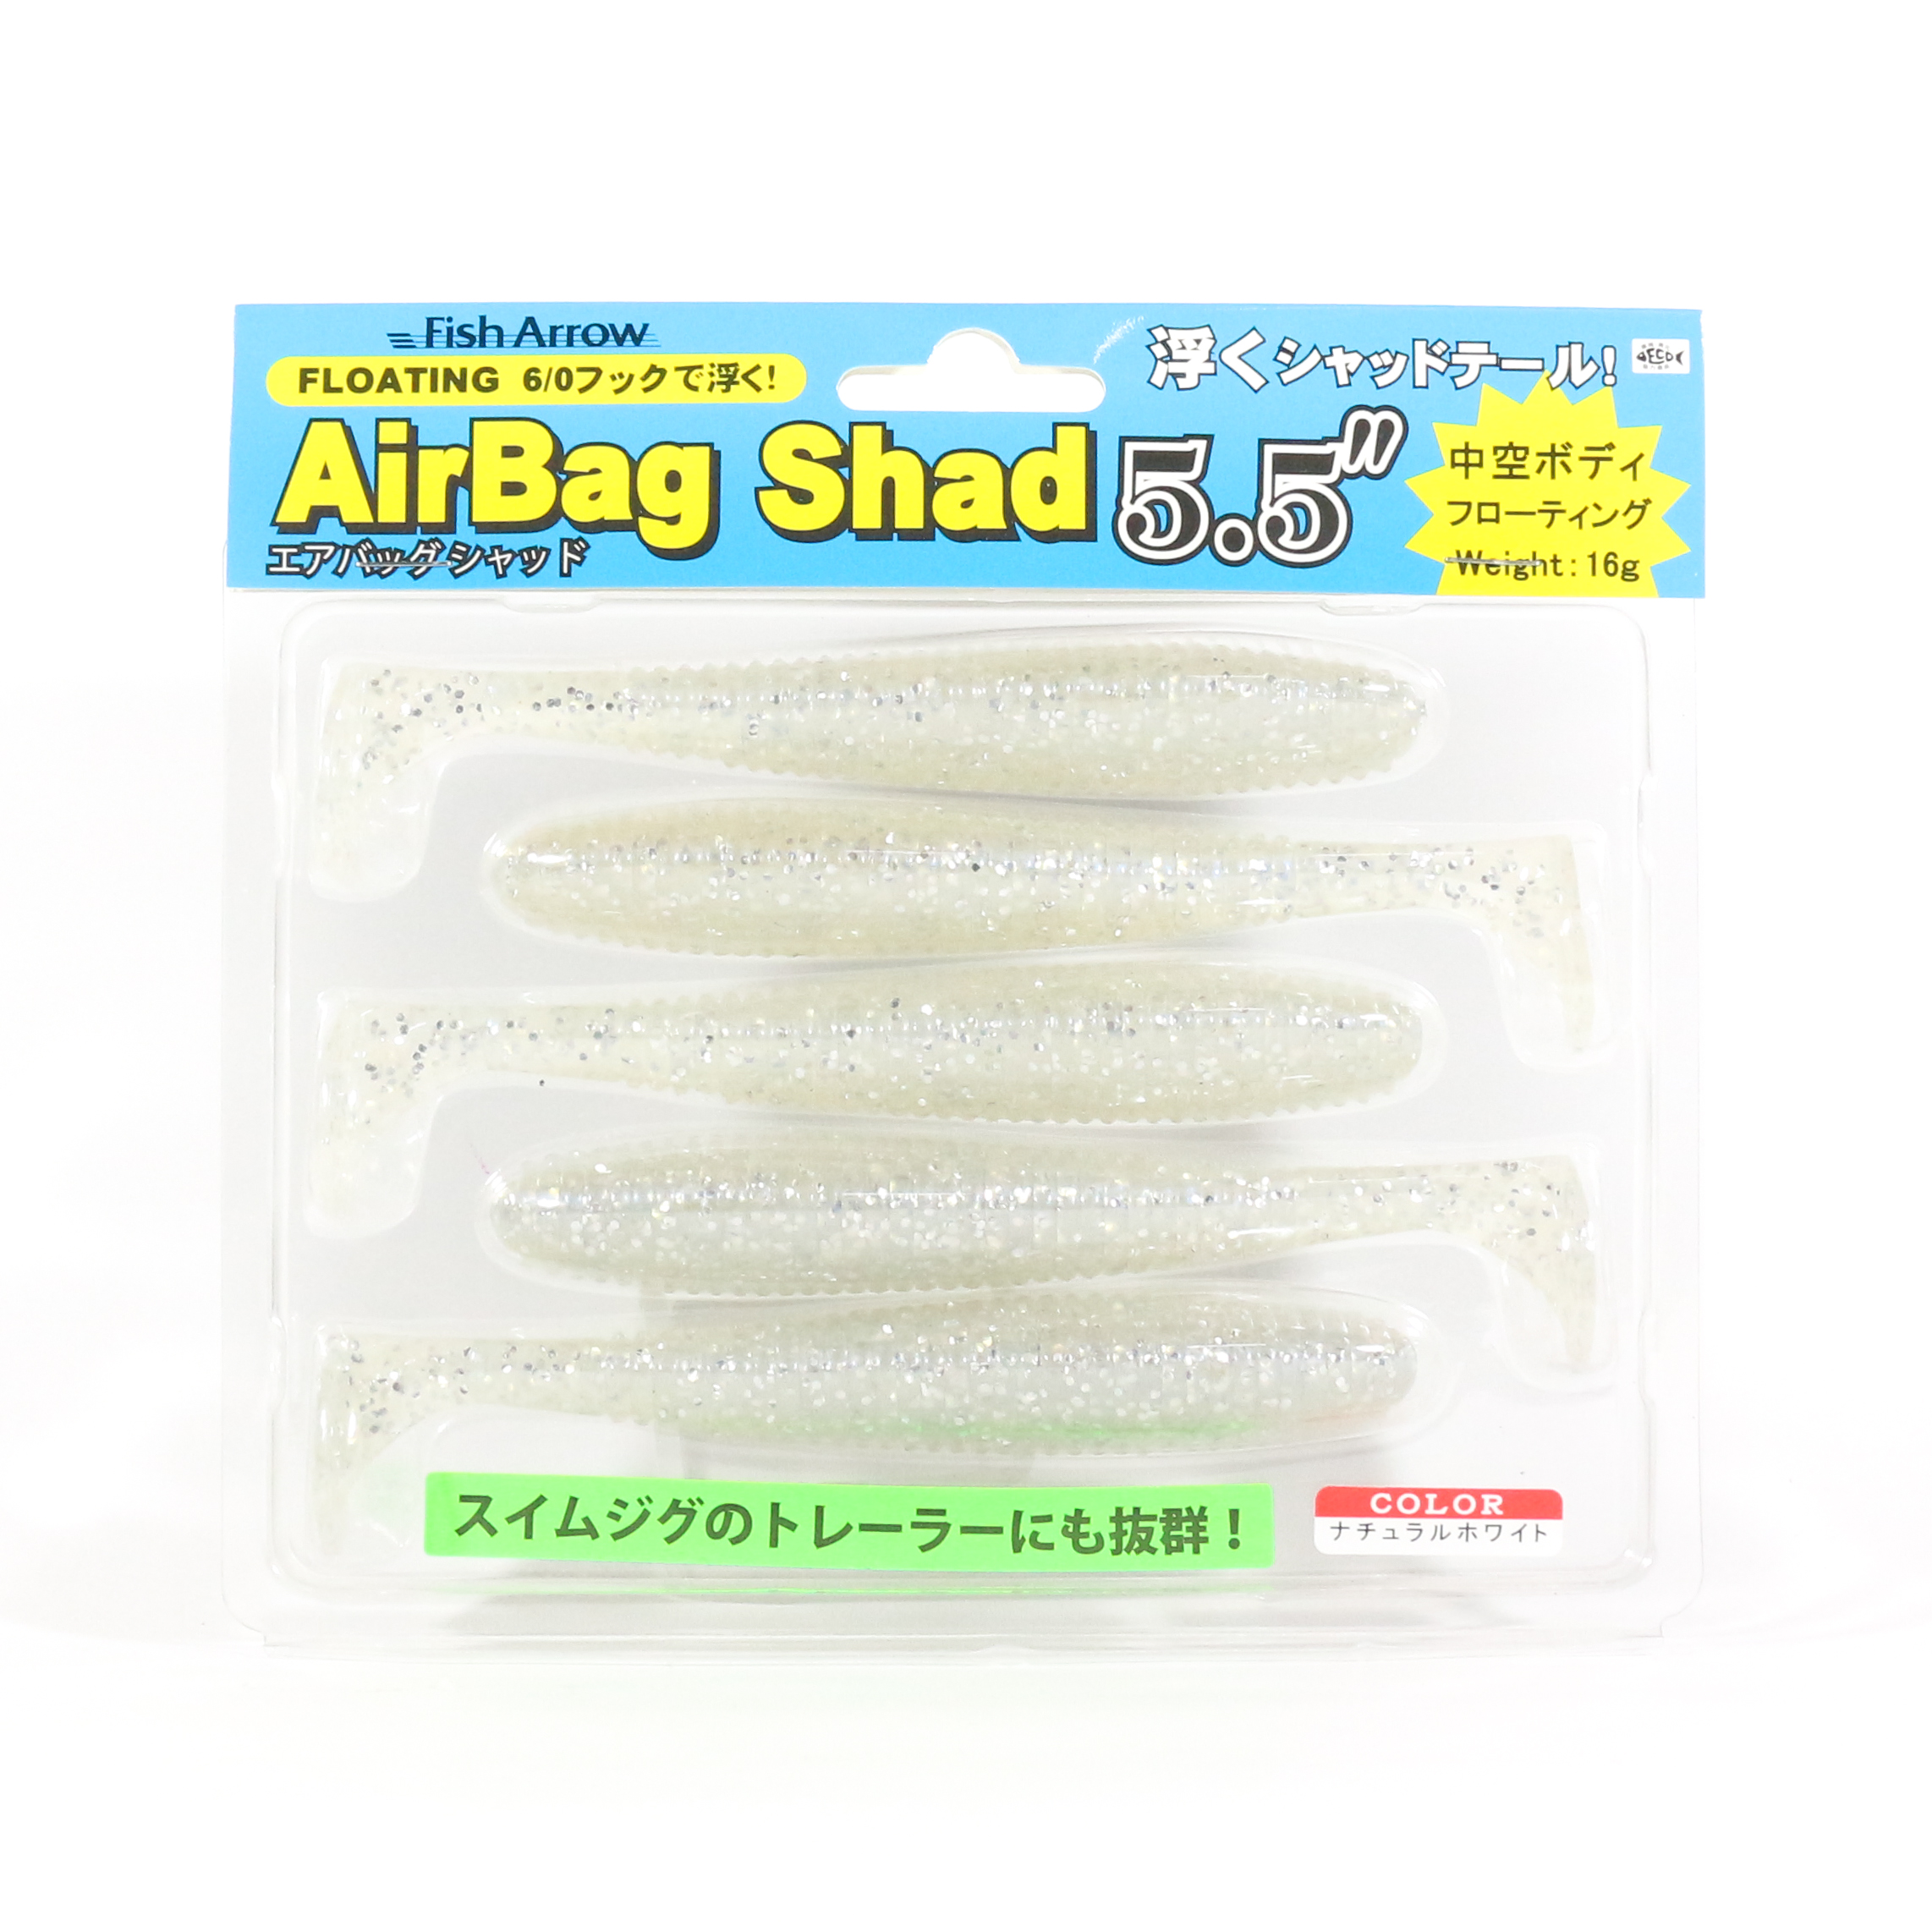 Fish Arrow Soft Lure Air Bag Shad 5.5 Inch 5 Piece per pack #14 (3289)